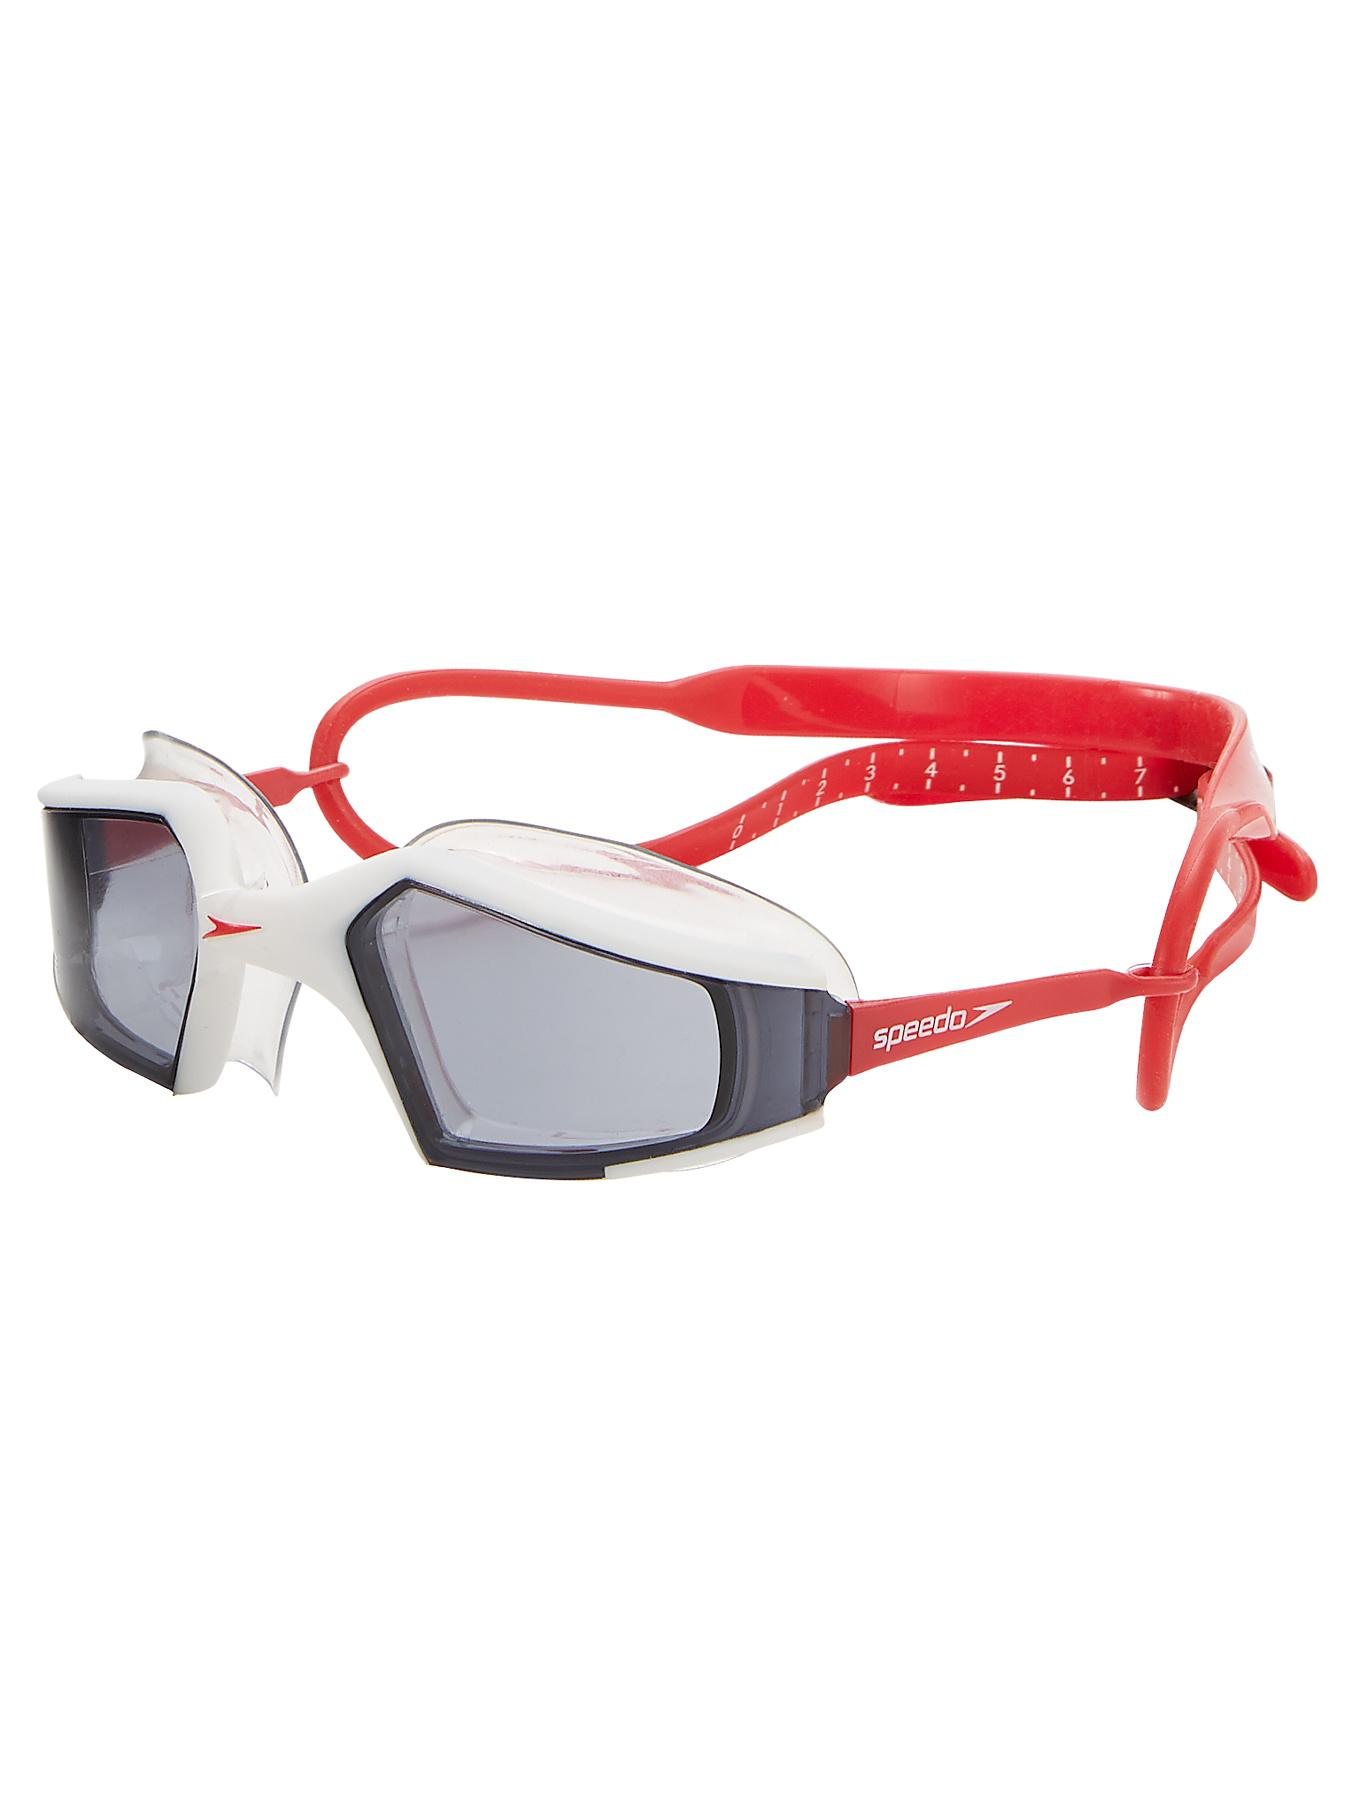 Speedo Aquapulse Max Goggles - White, White